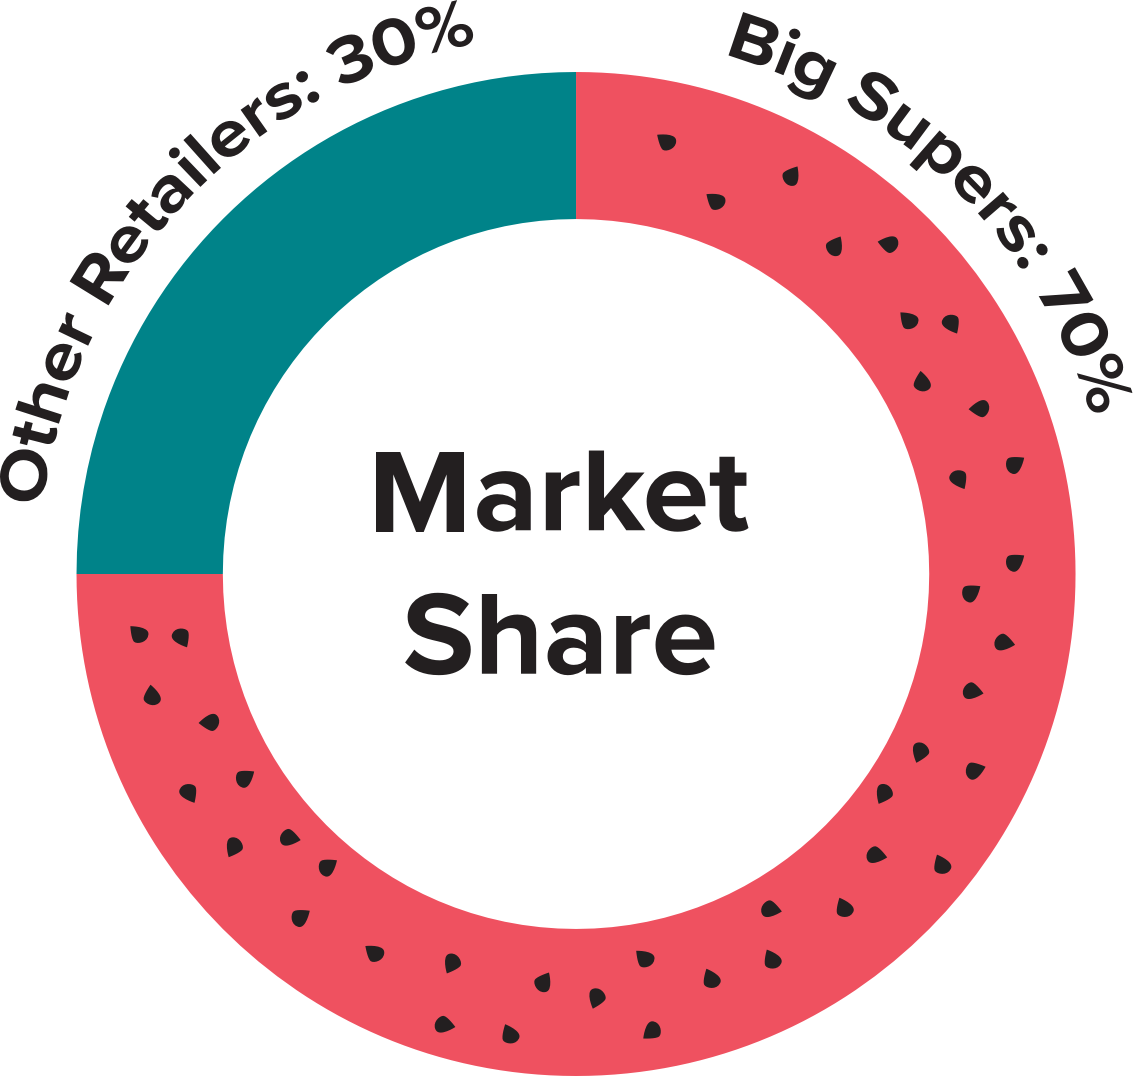 Market Share. Big super 70%, Other Retailer 30%